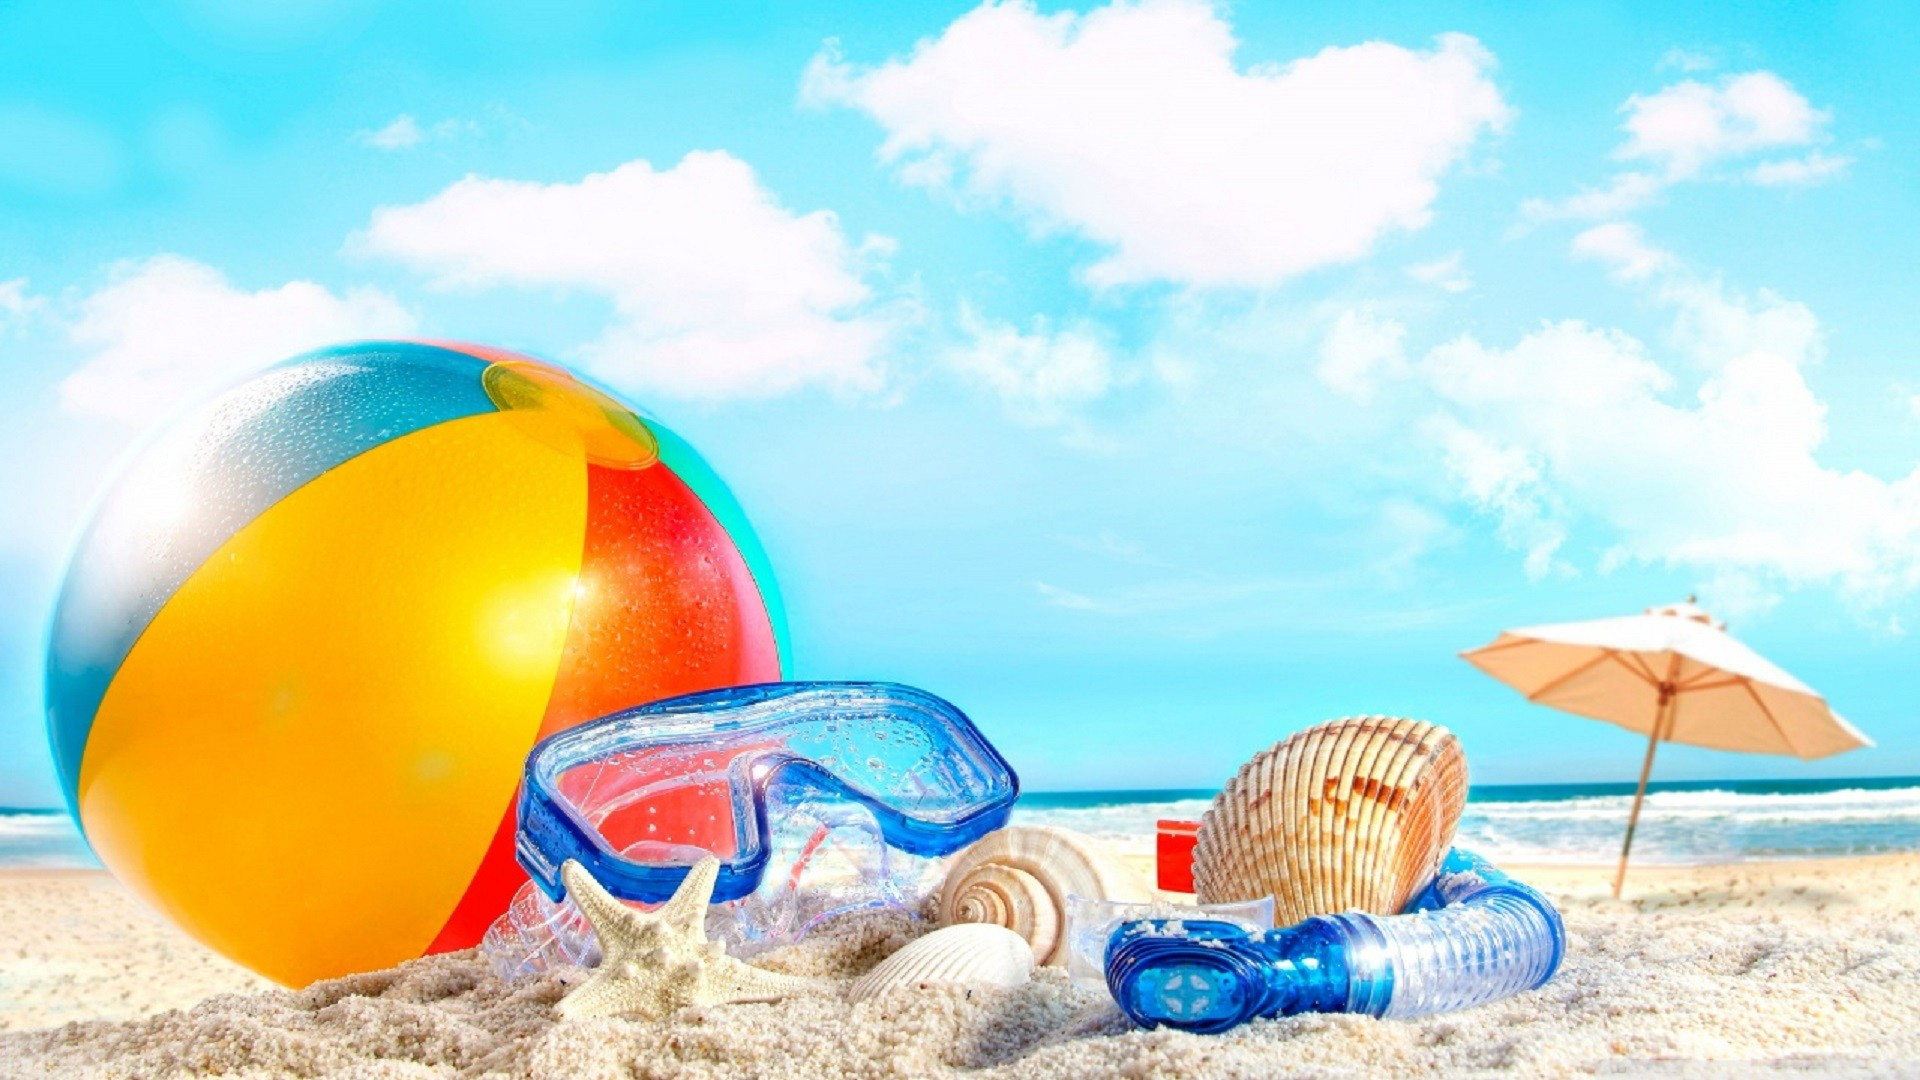 Summer Beach Scenes Wallpaper (45+ Images